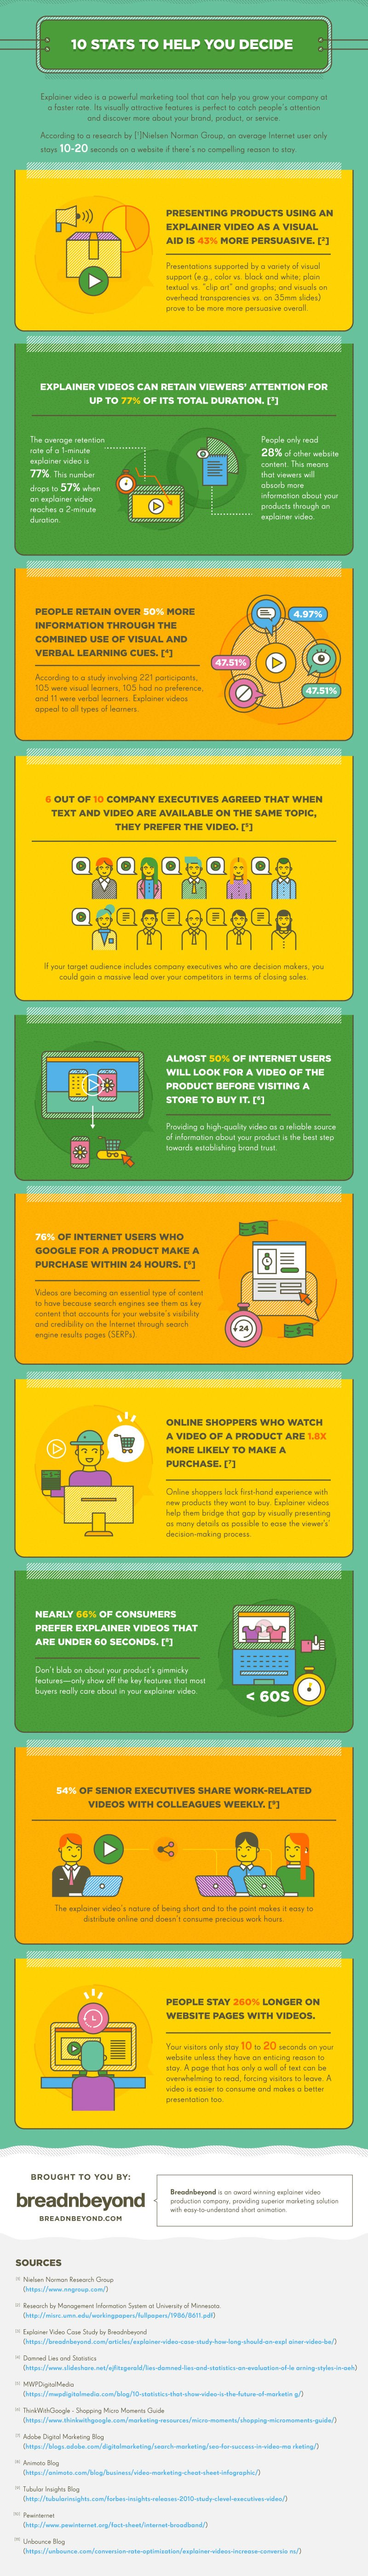 does-your-company-really-need-explainer-video-infographic-10-stats-to-help-you-decide-infographic